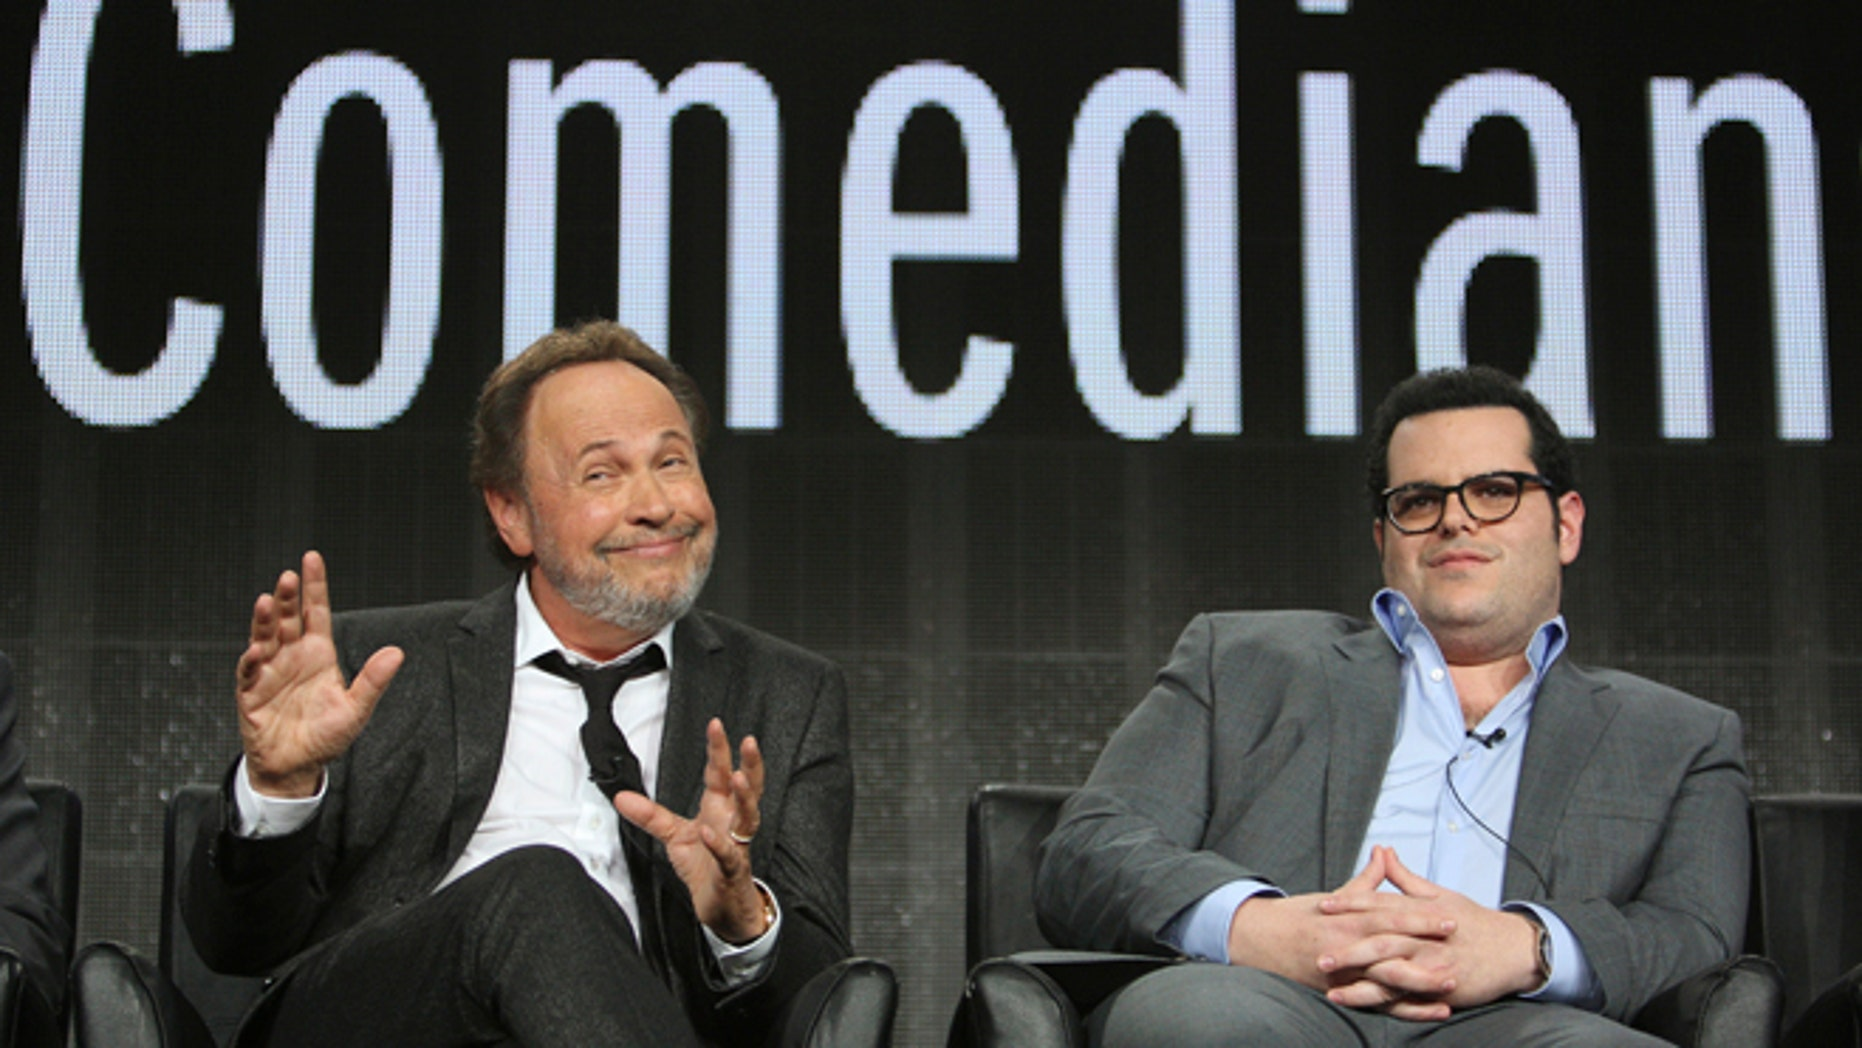 """Comedians Billy Crystal (L) and Josh Gad participate in """"The Comedians"""" panel at the Television Critics Association (TCA) Winter Press Tour in Pasadena, California January 18, 2015.   REUTERS/David McNew  (UNITED STATES - Tags: ENTERTAINMENT) - RTR4LX4X"""